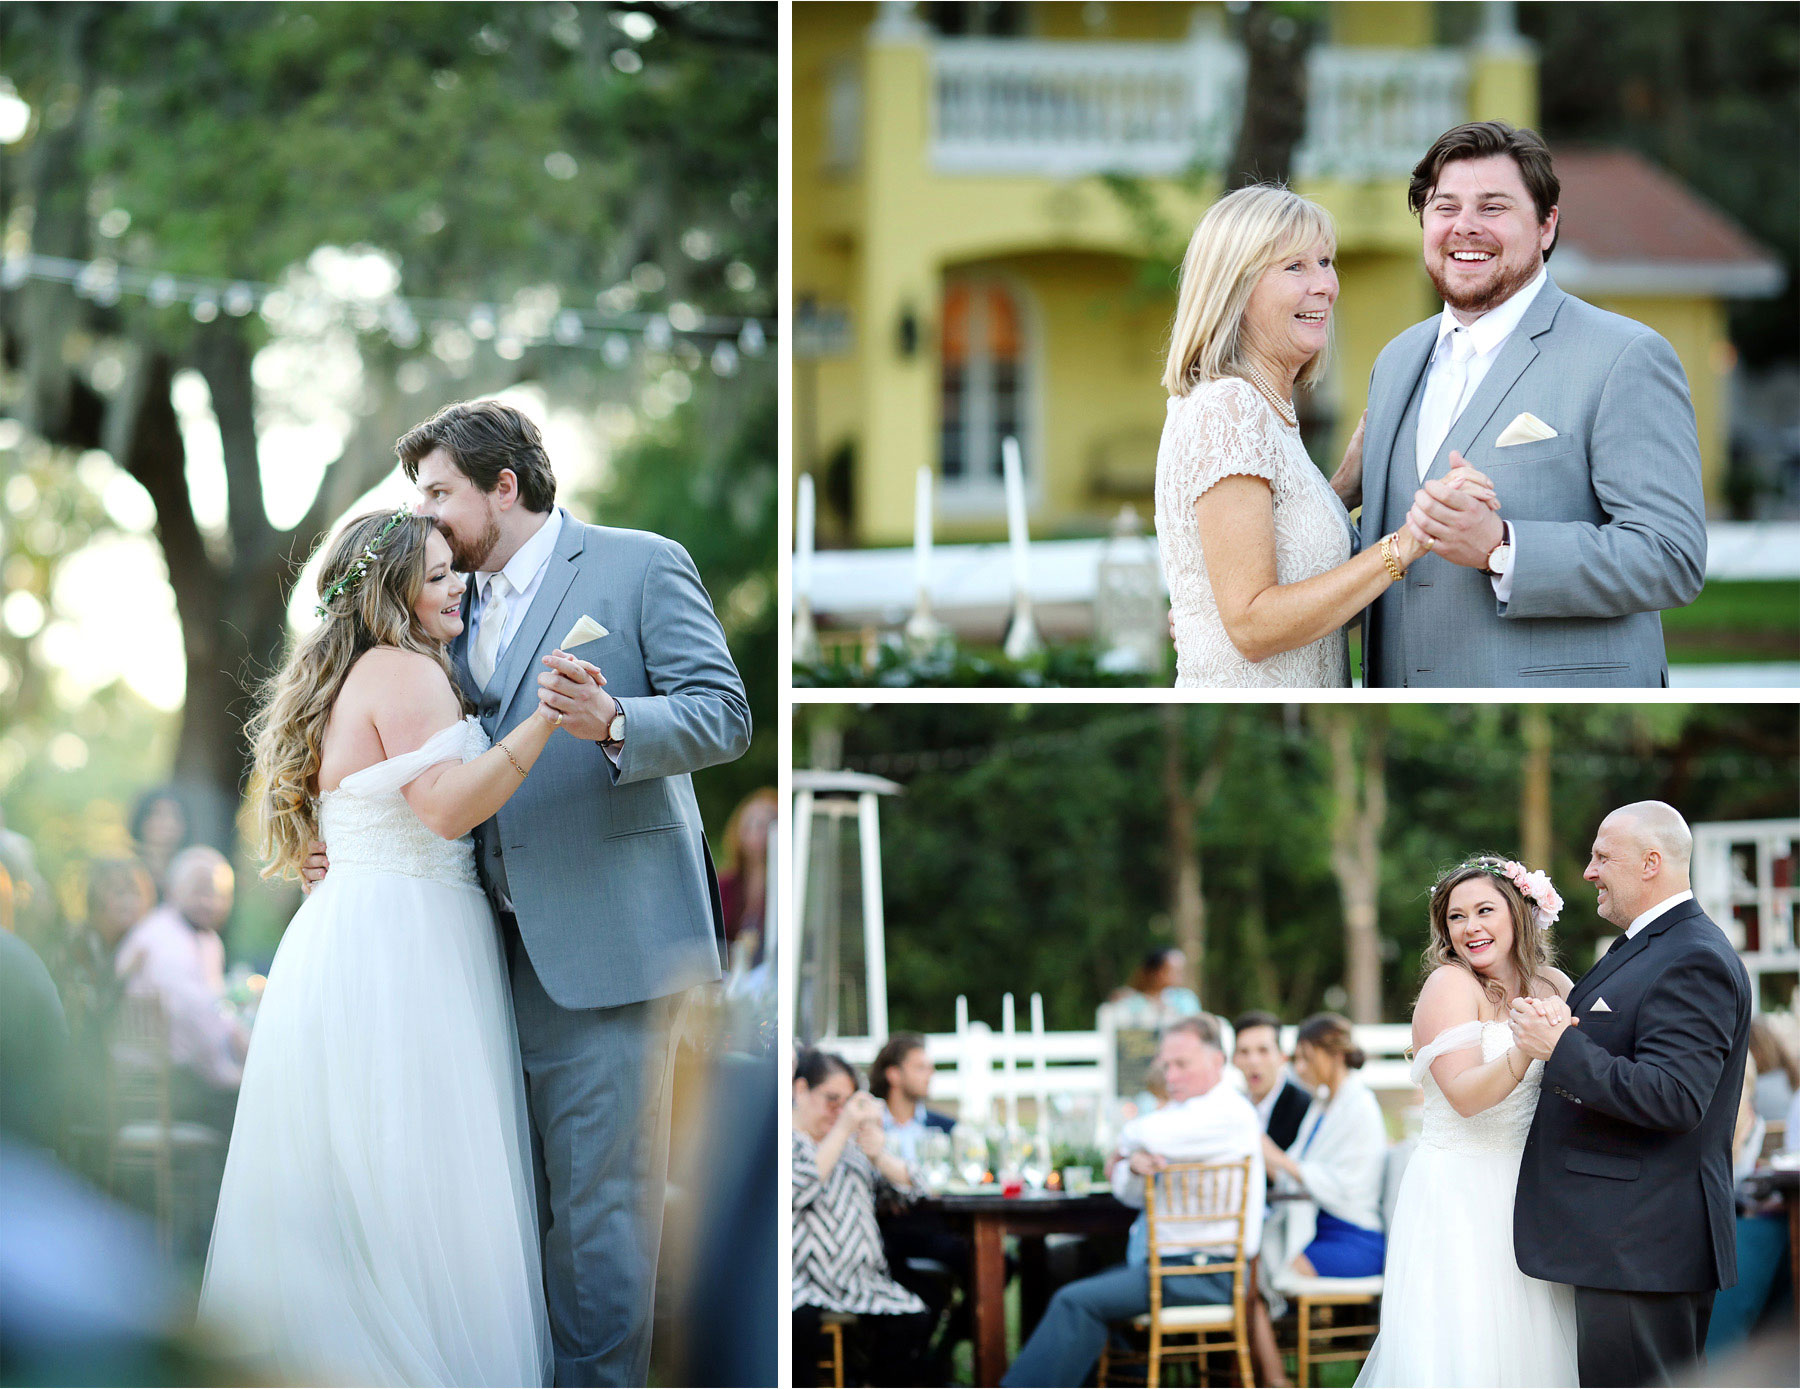 26-Brandon-Florida-Wedding-Photographer-by-Andrew-Vick-Photography-Casa-Lantana-Spring-Reception-Bride-Groom-Mother-Father-Parents-Dance-Kristianna-and-Ben.jpg